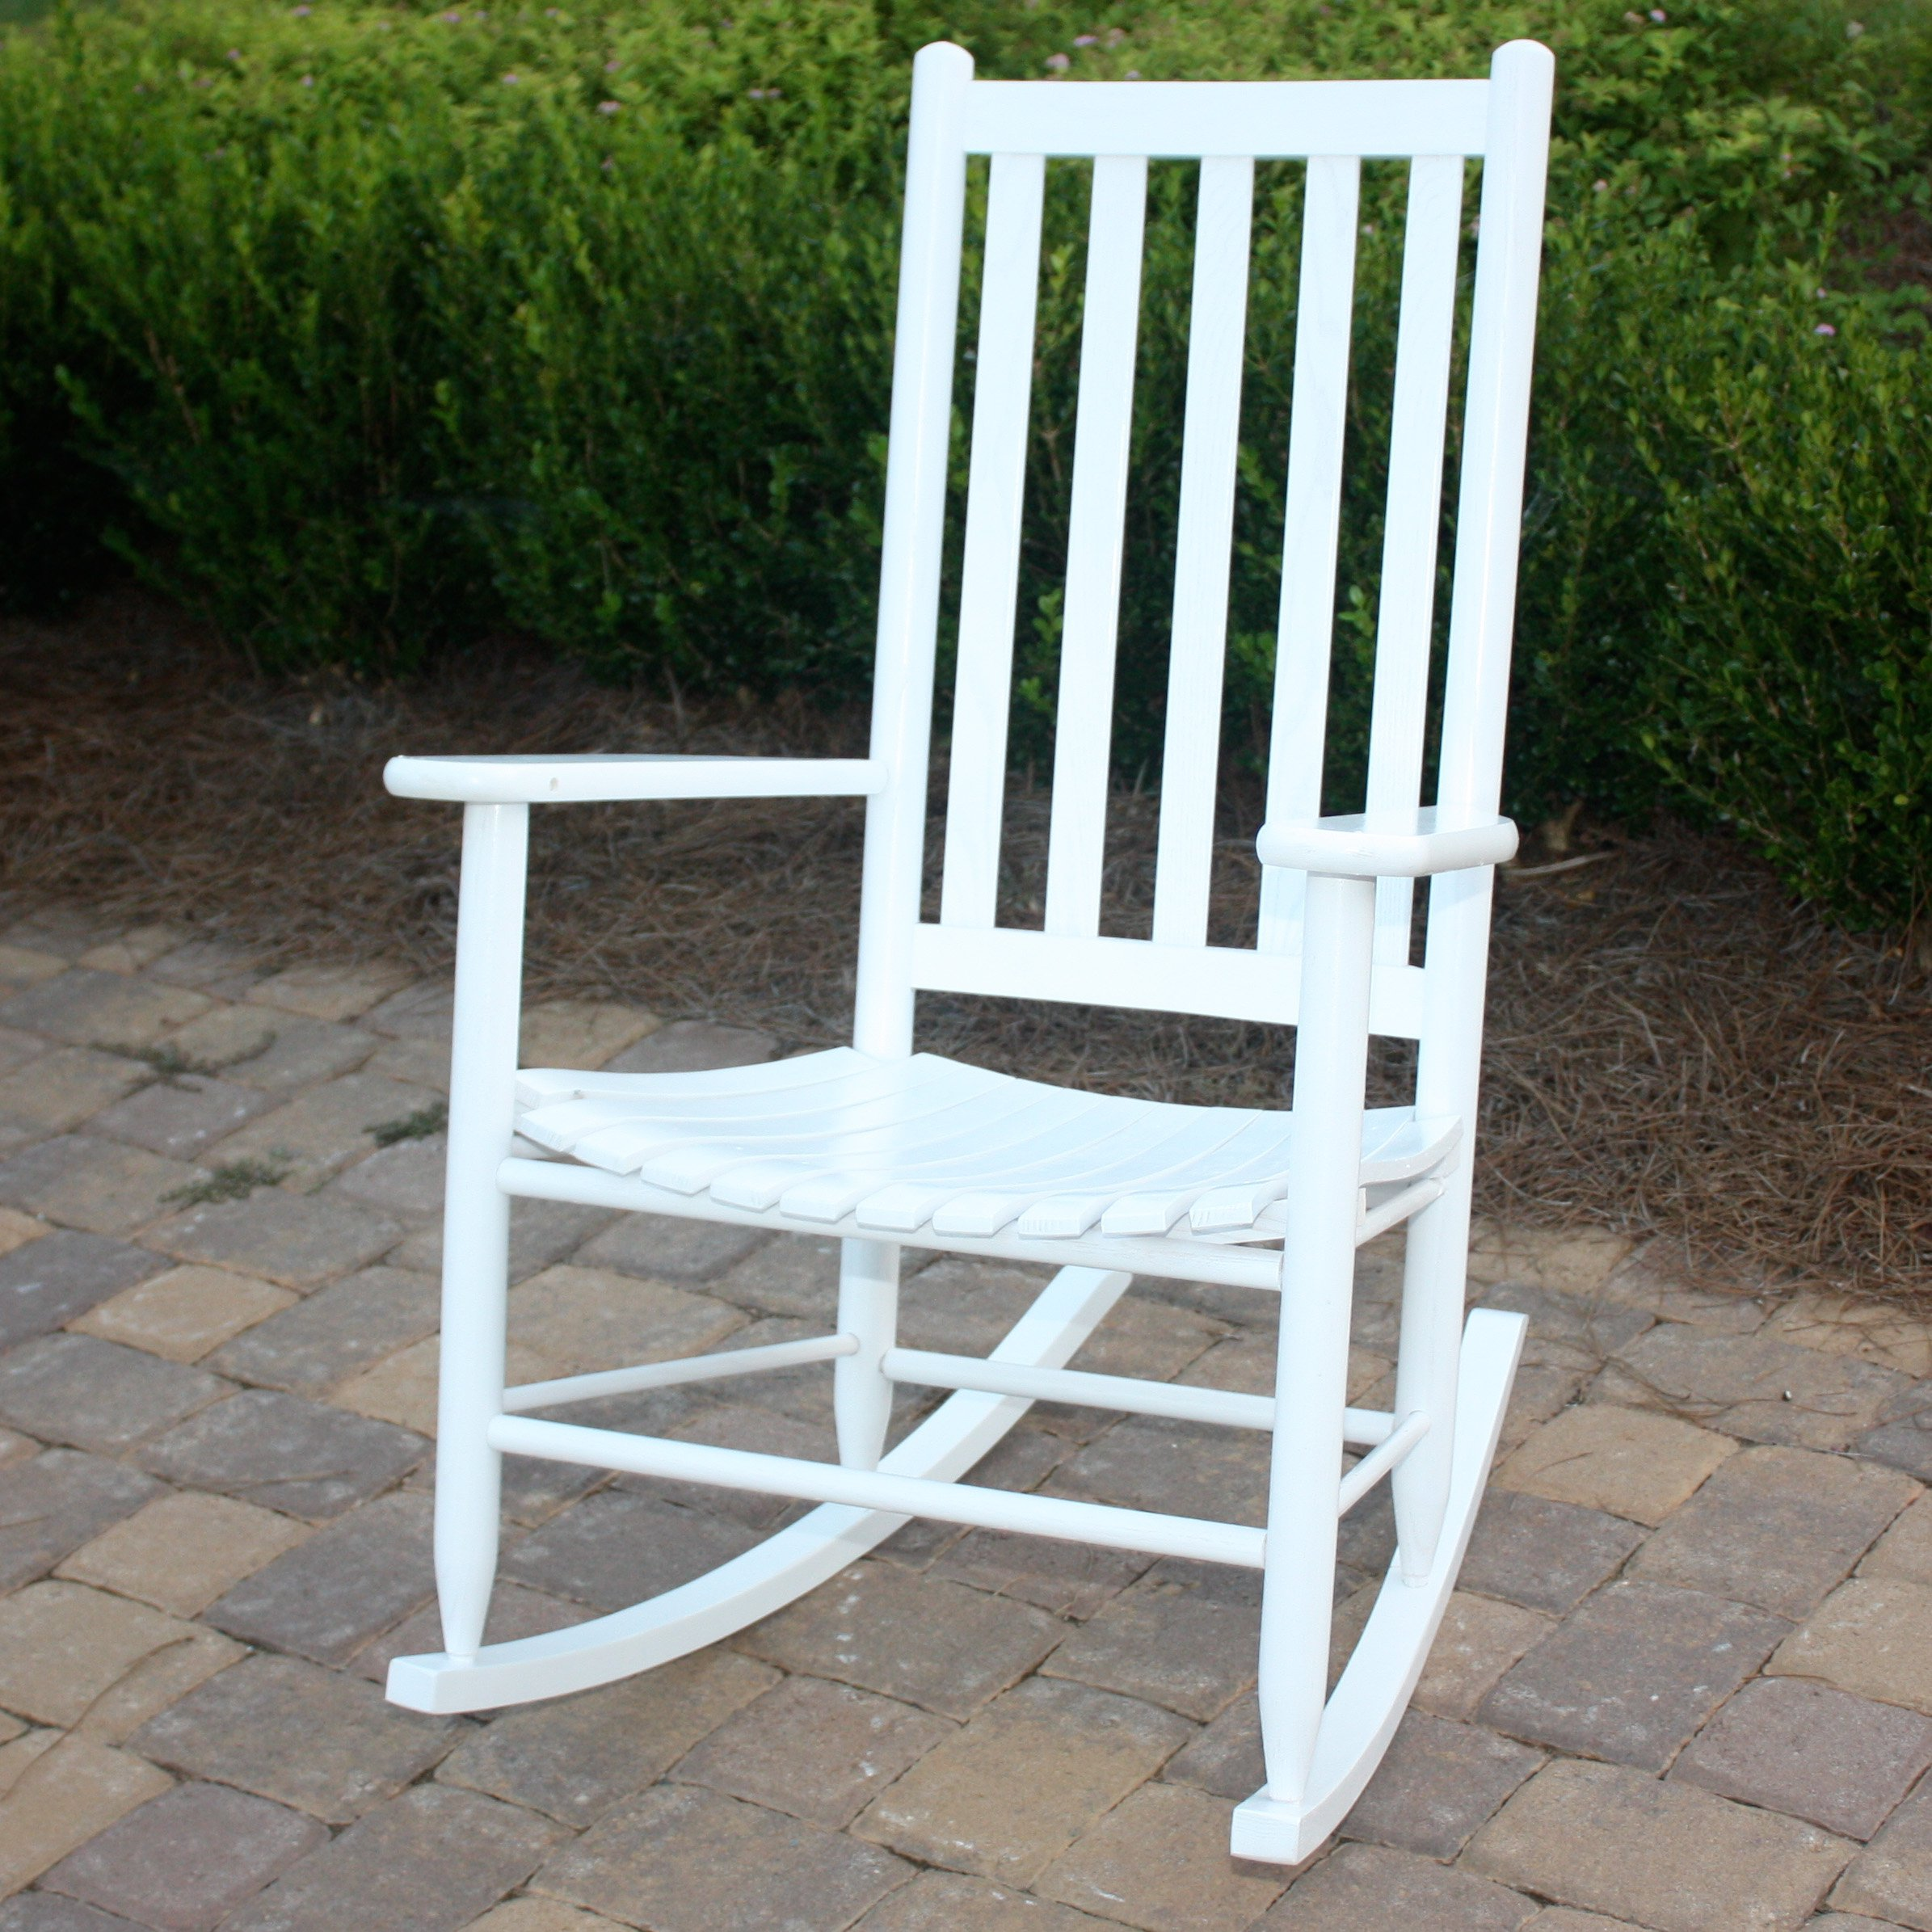 Dixie Seating Company Outdoor/Indoor Georgetown Slat Rocking Chair    Walmart.com